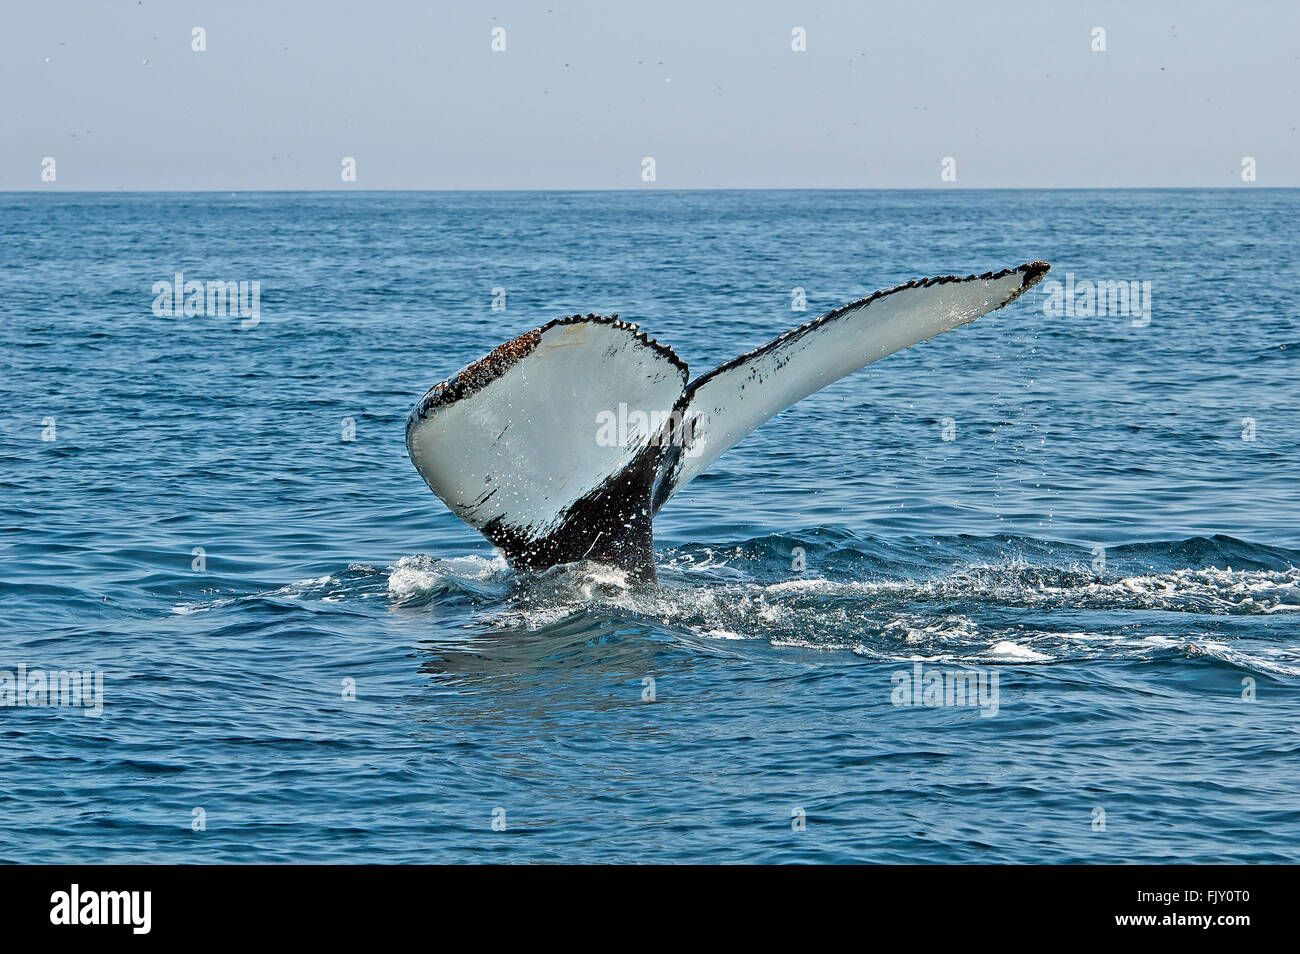 Humpback whale tail above water - Stock Image